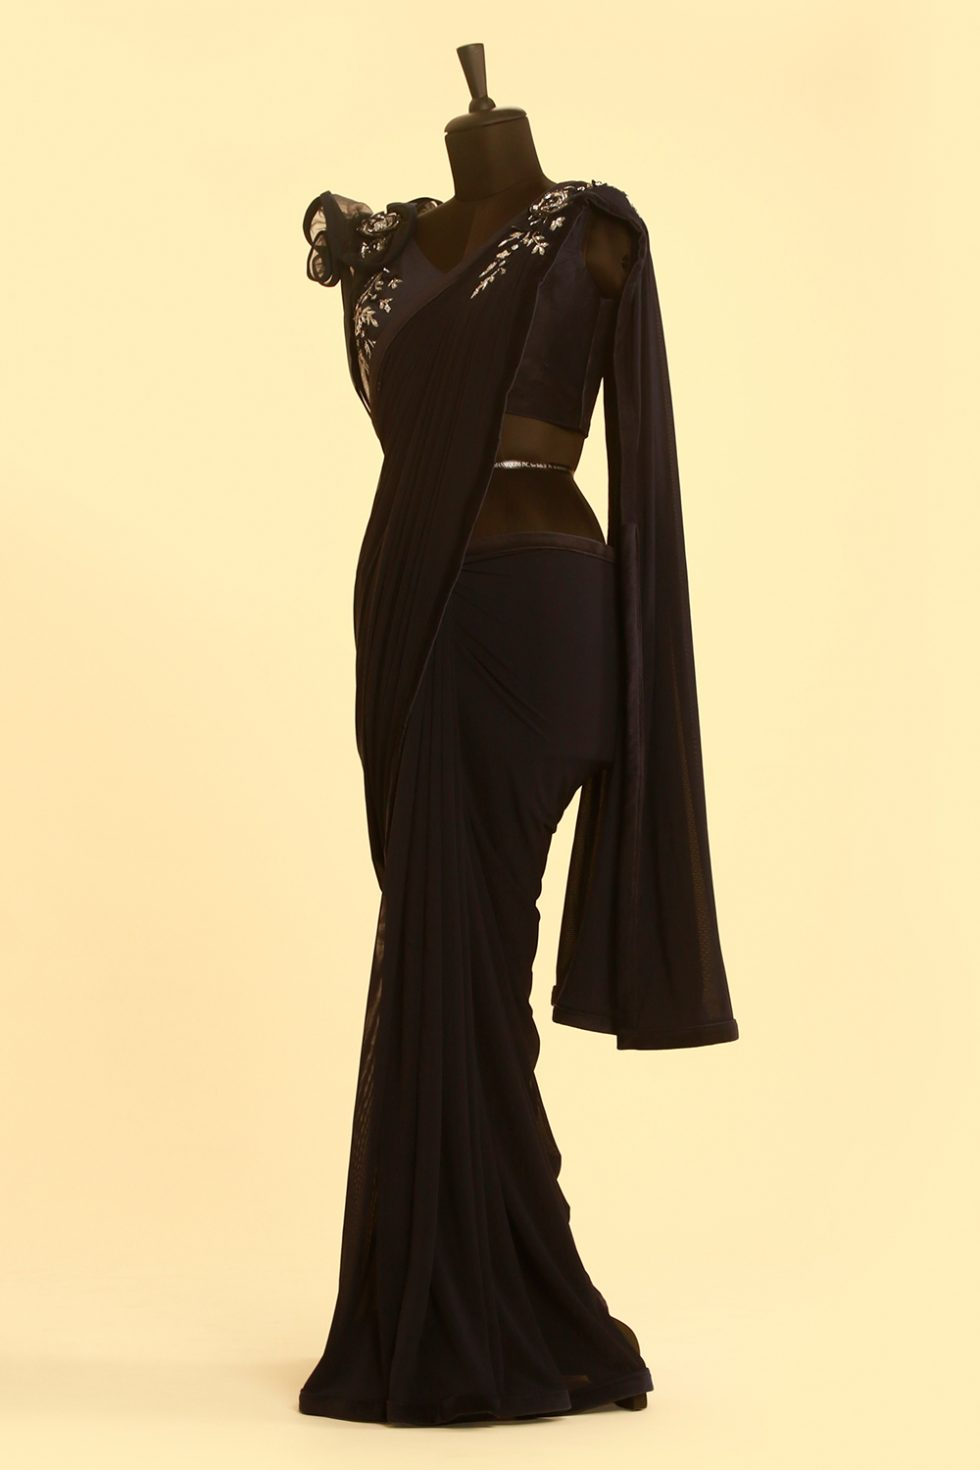 Navy blue saree with matching blouse with silver embroidery and 3-D shoulder detail